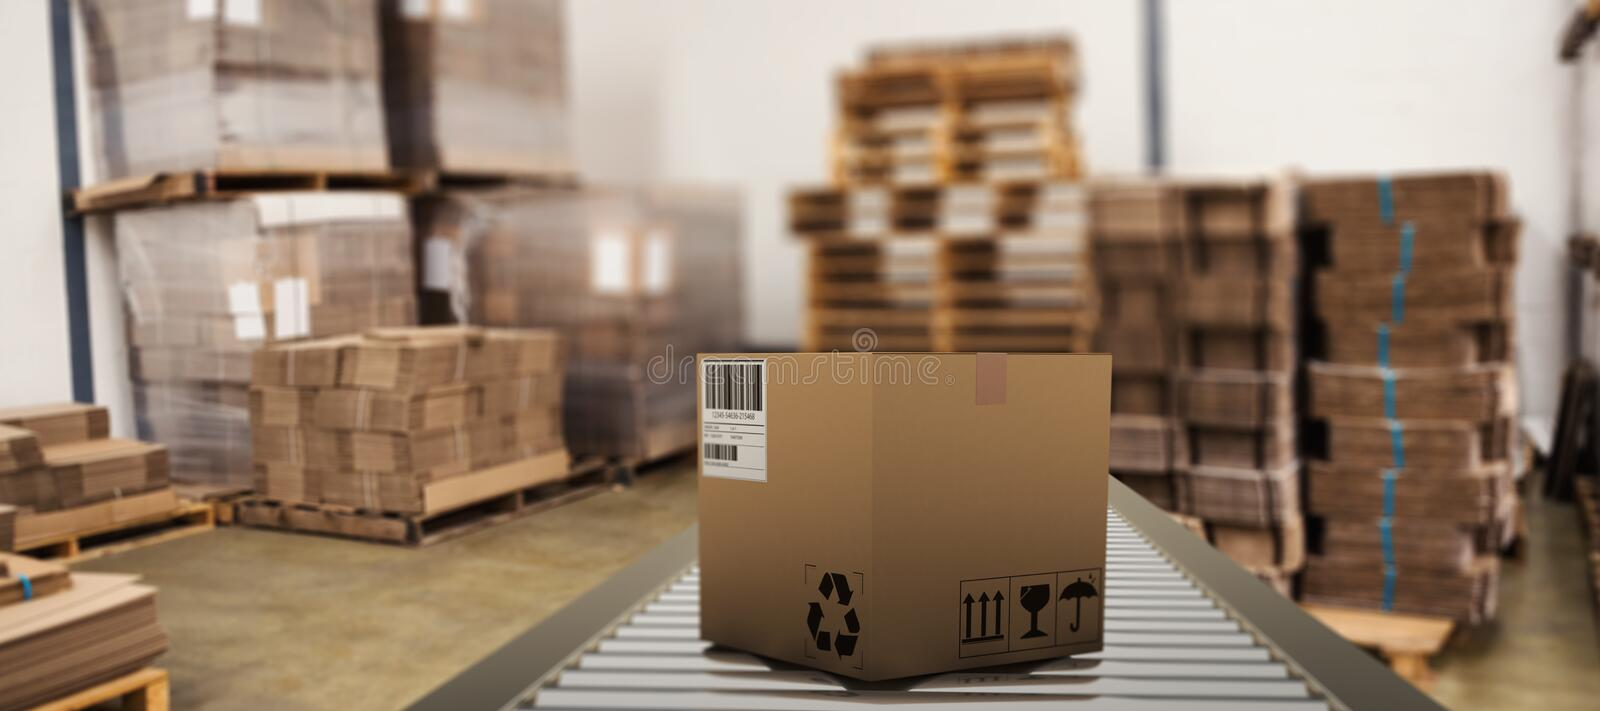 Composite image of packed parcel box on conveyor belt. Packed parcel box on conveyor belt against many stack of cardboard boxes royalty free illustration